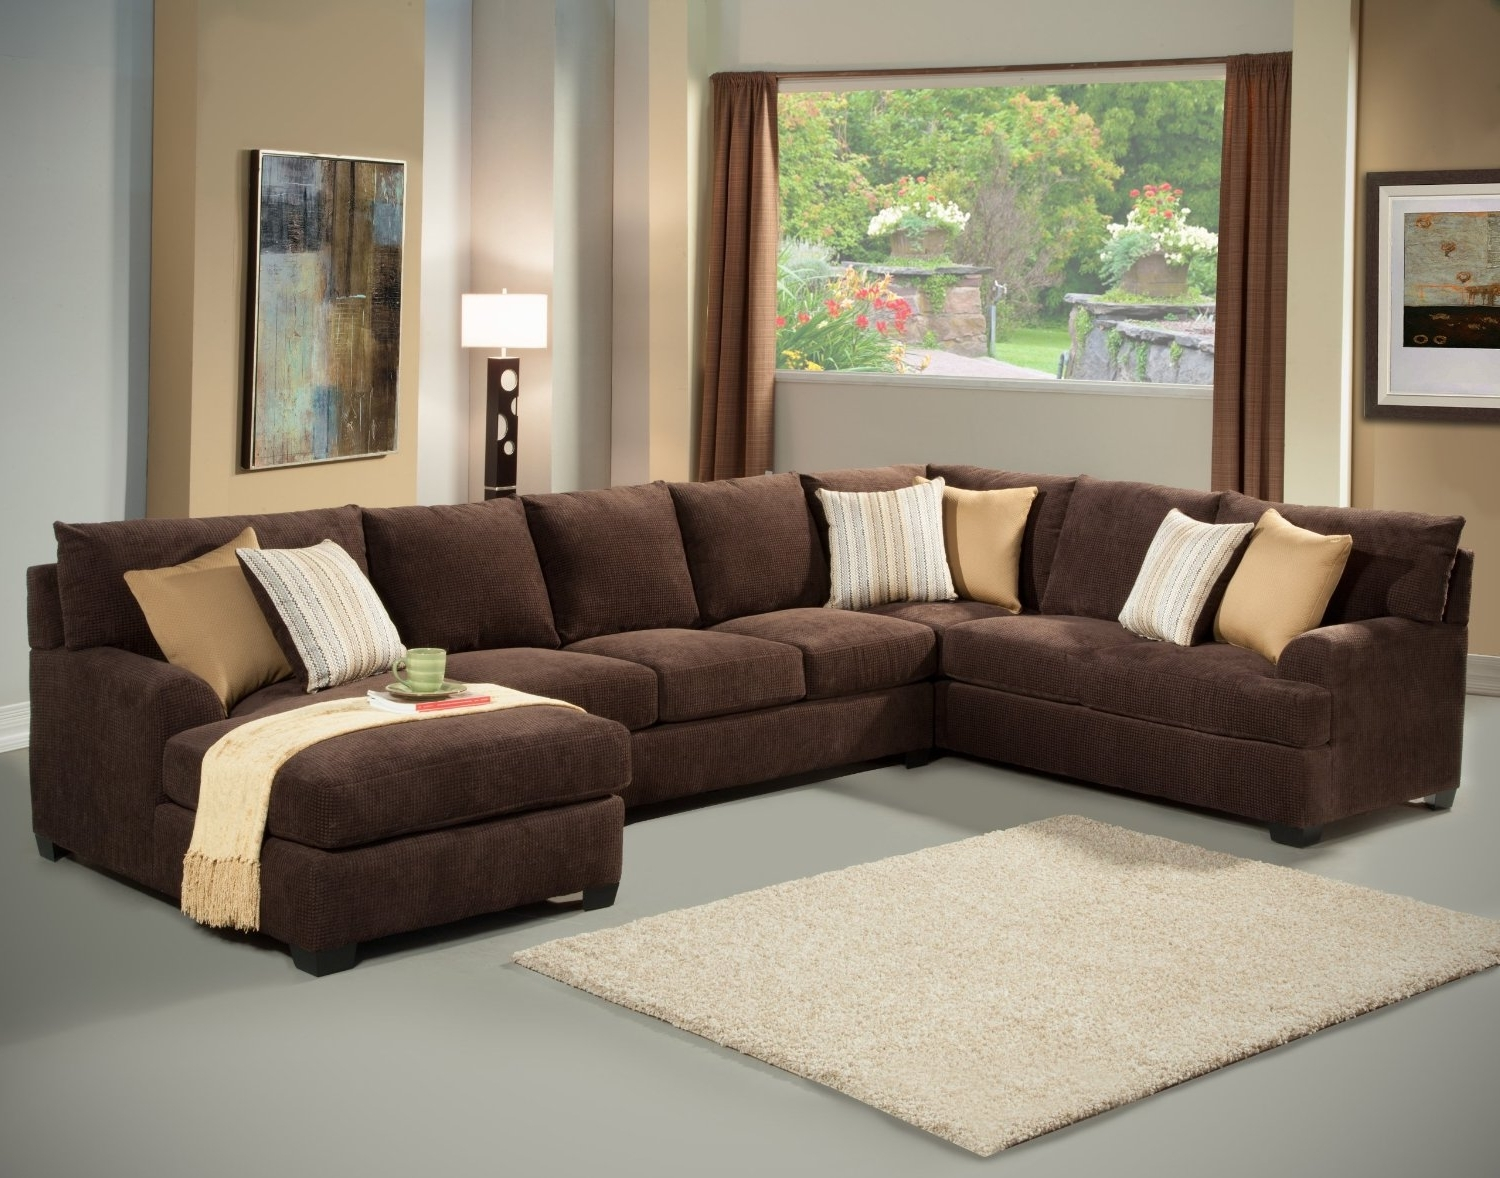 Cheap Sectional Sofas Black Leather Sectional Big Lots Sectional With Regard To 2018 Big Lots Chaises (View 8 of 15)